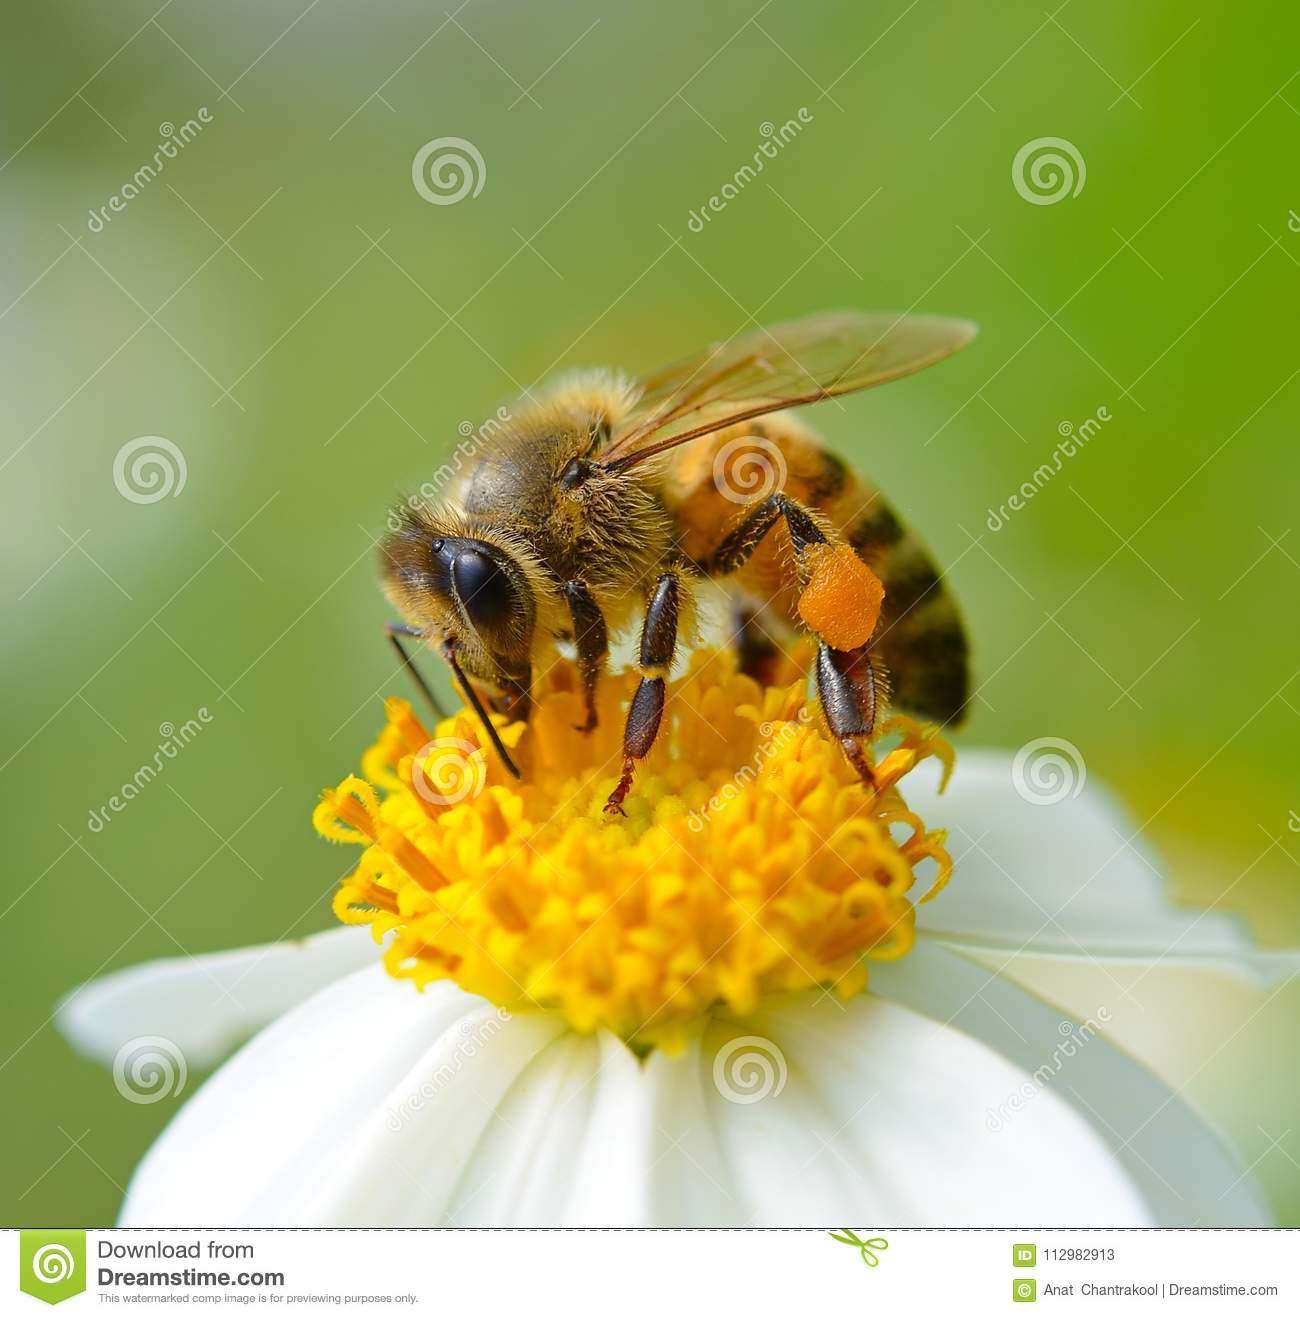 Bee to a flower.